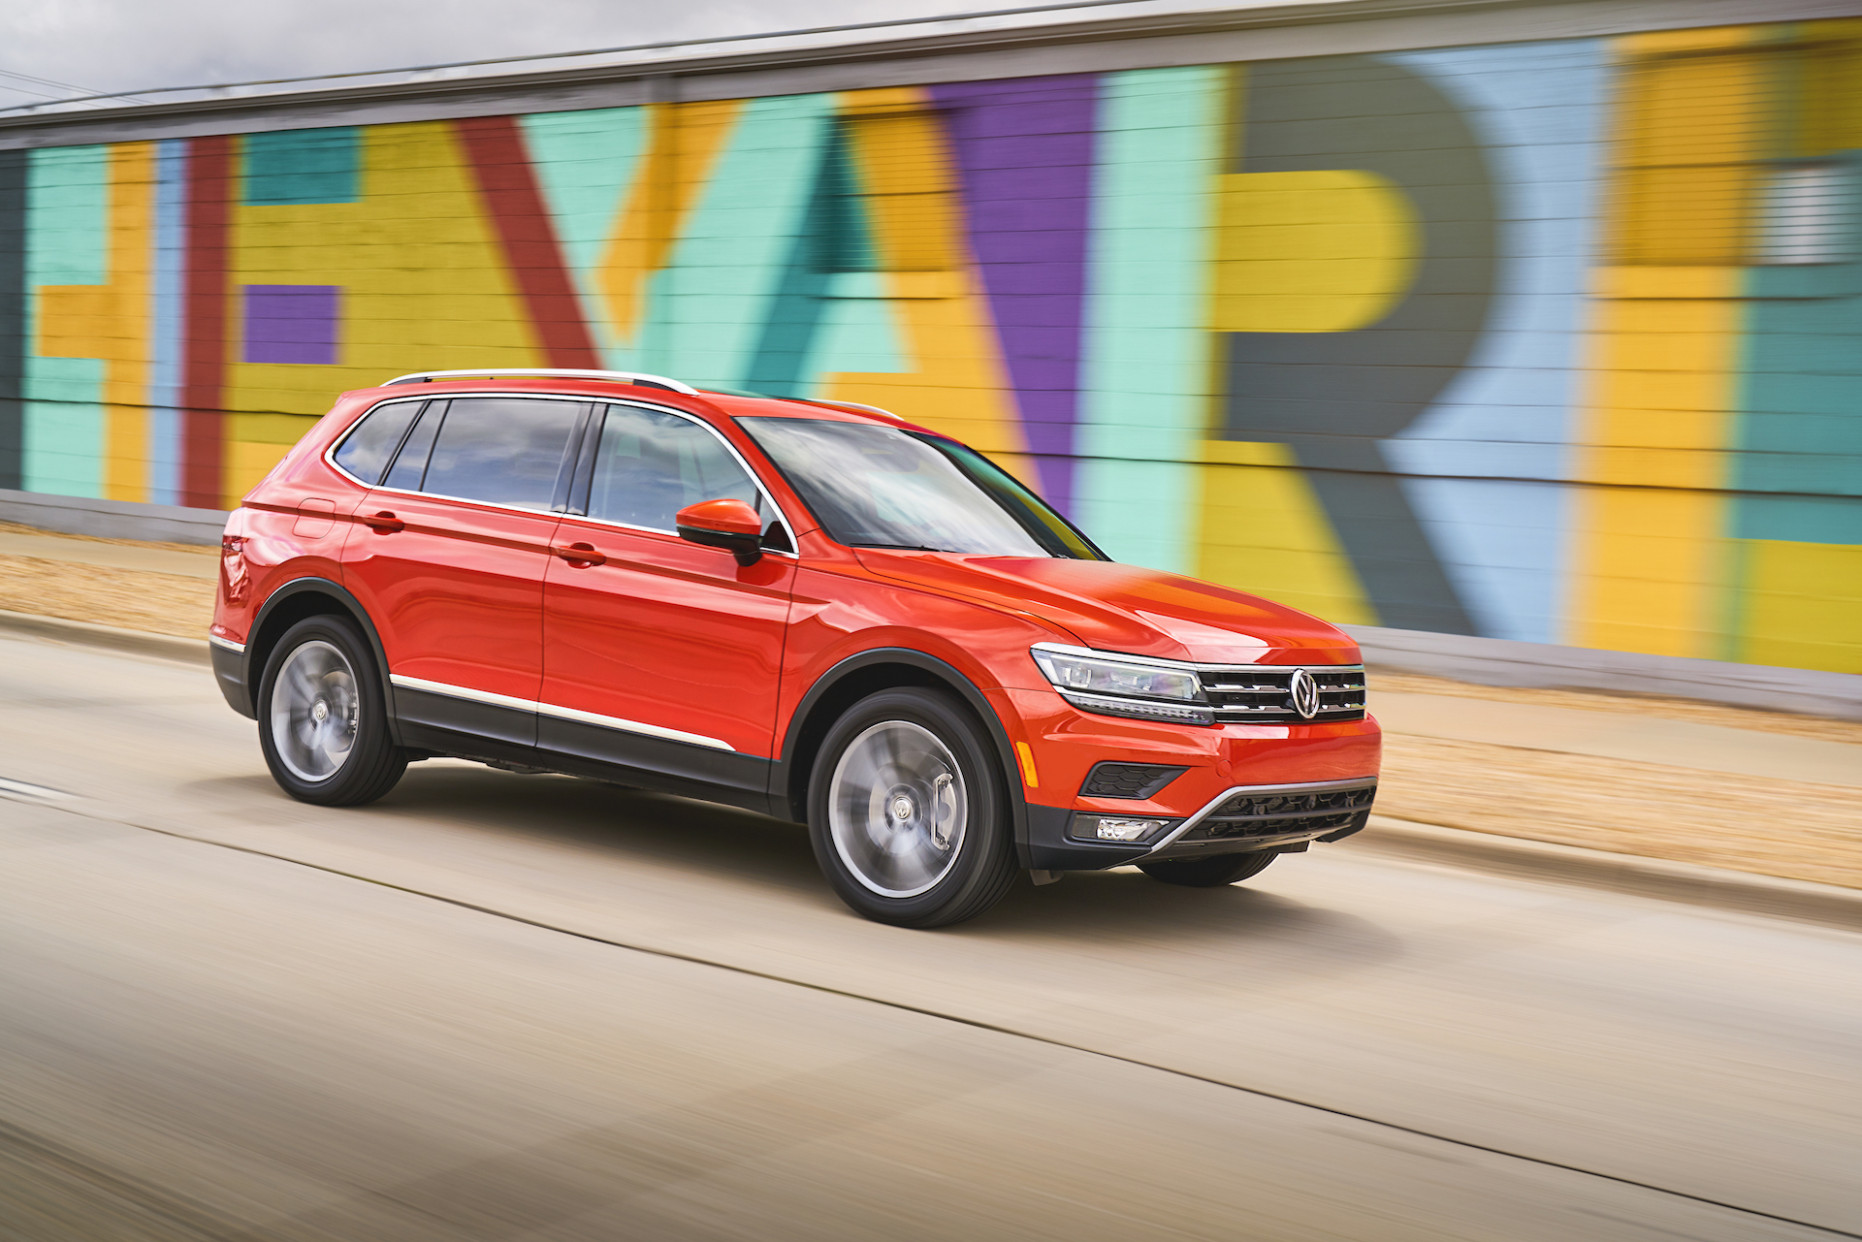 11 Volkswagen Tiguan (VW) Review, Ratings, Specs, Prices, and ..